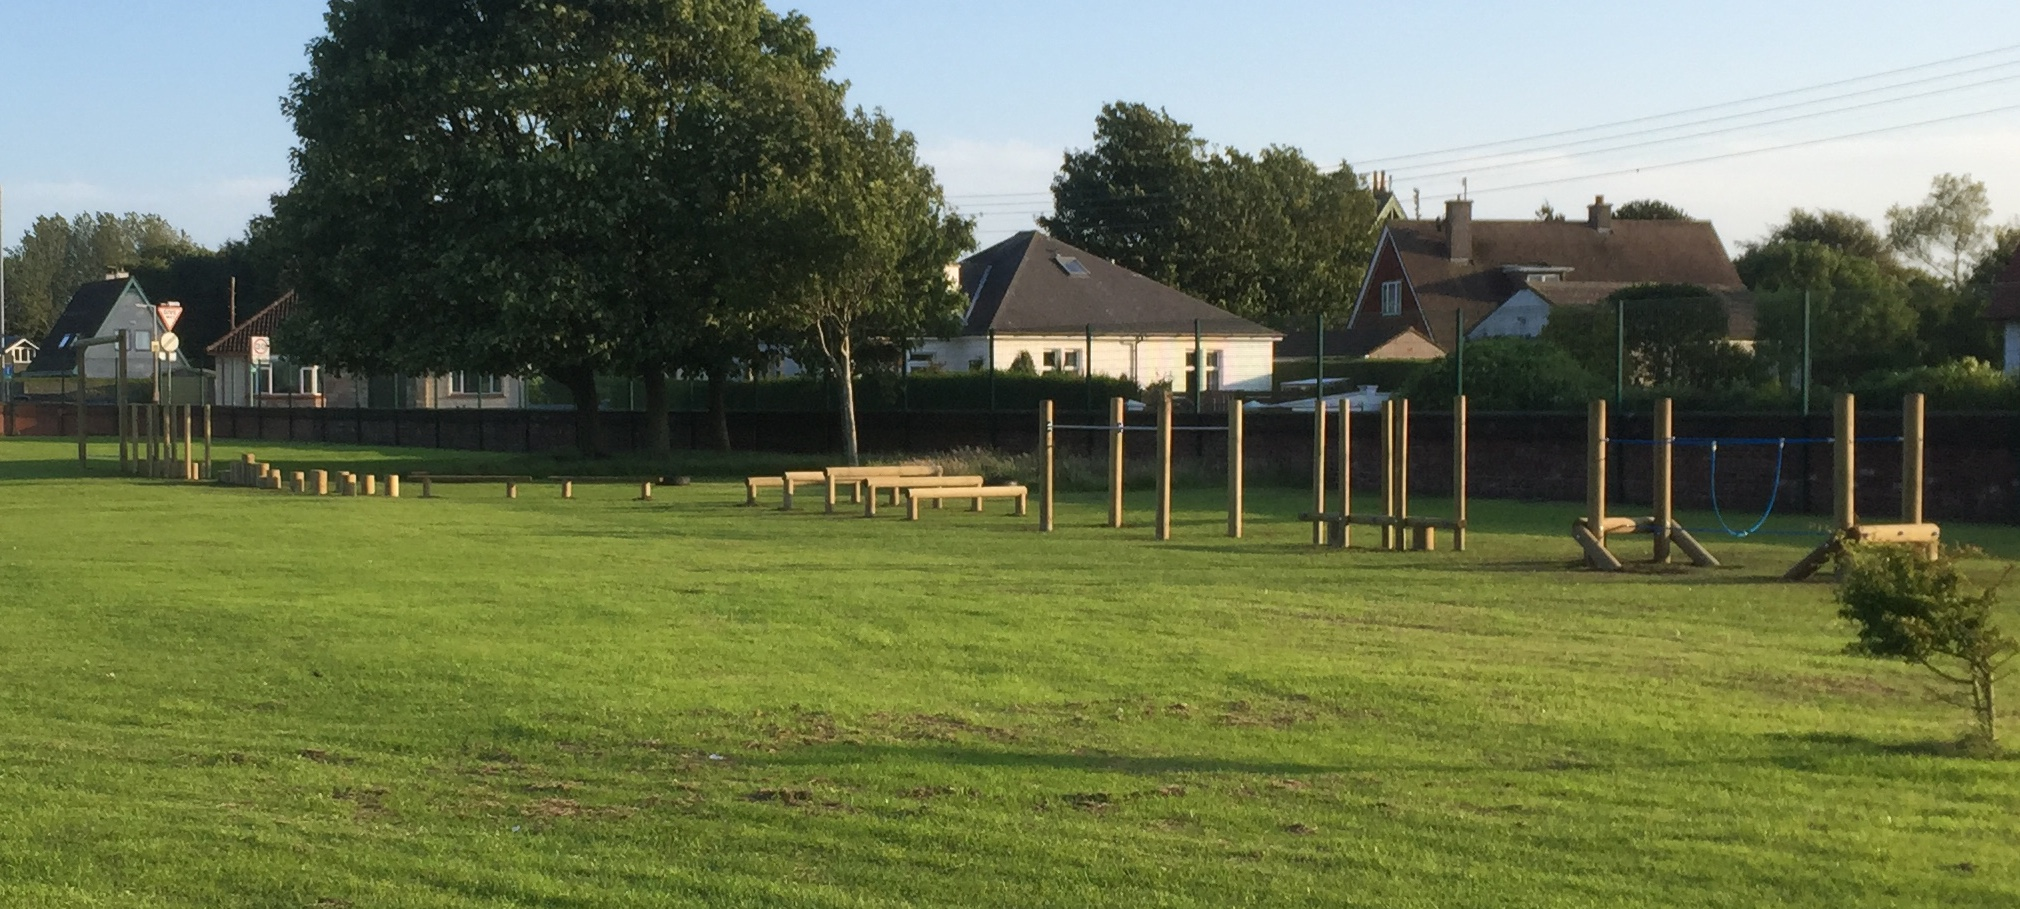 Trim trail playground equipment installed by first4playgrounds in Stranraer, Scotland